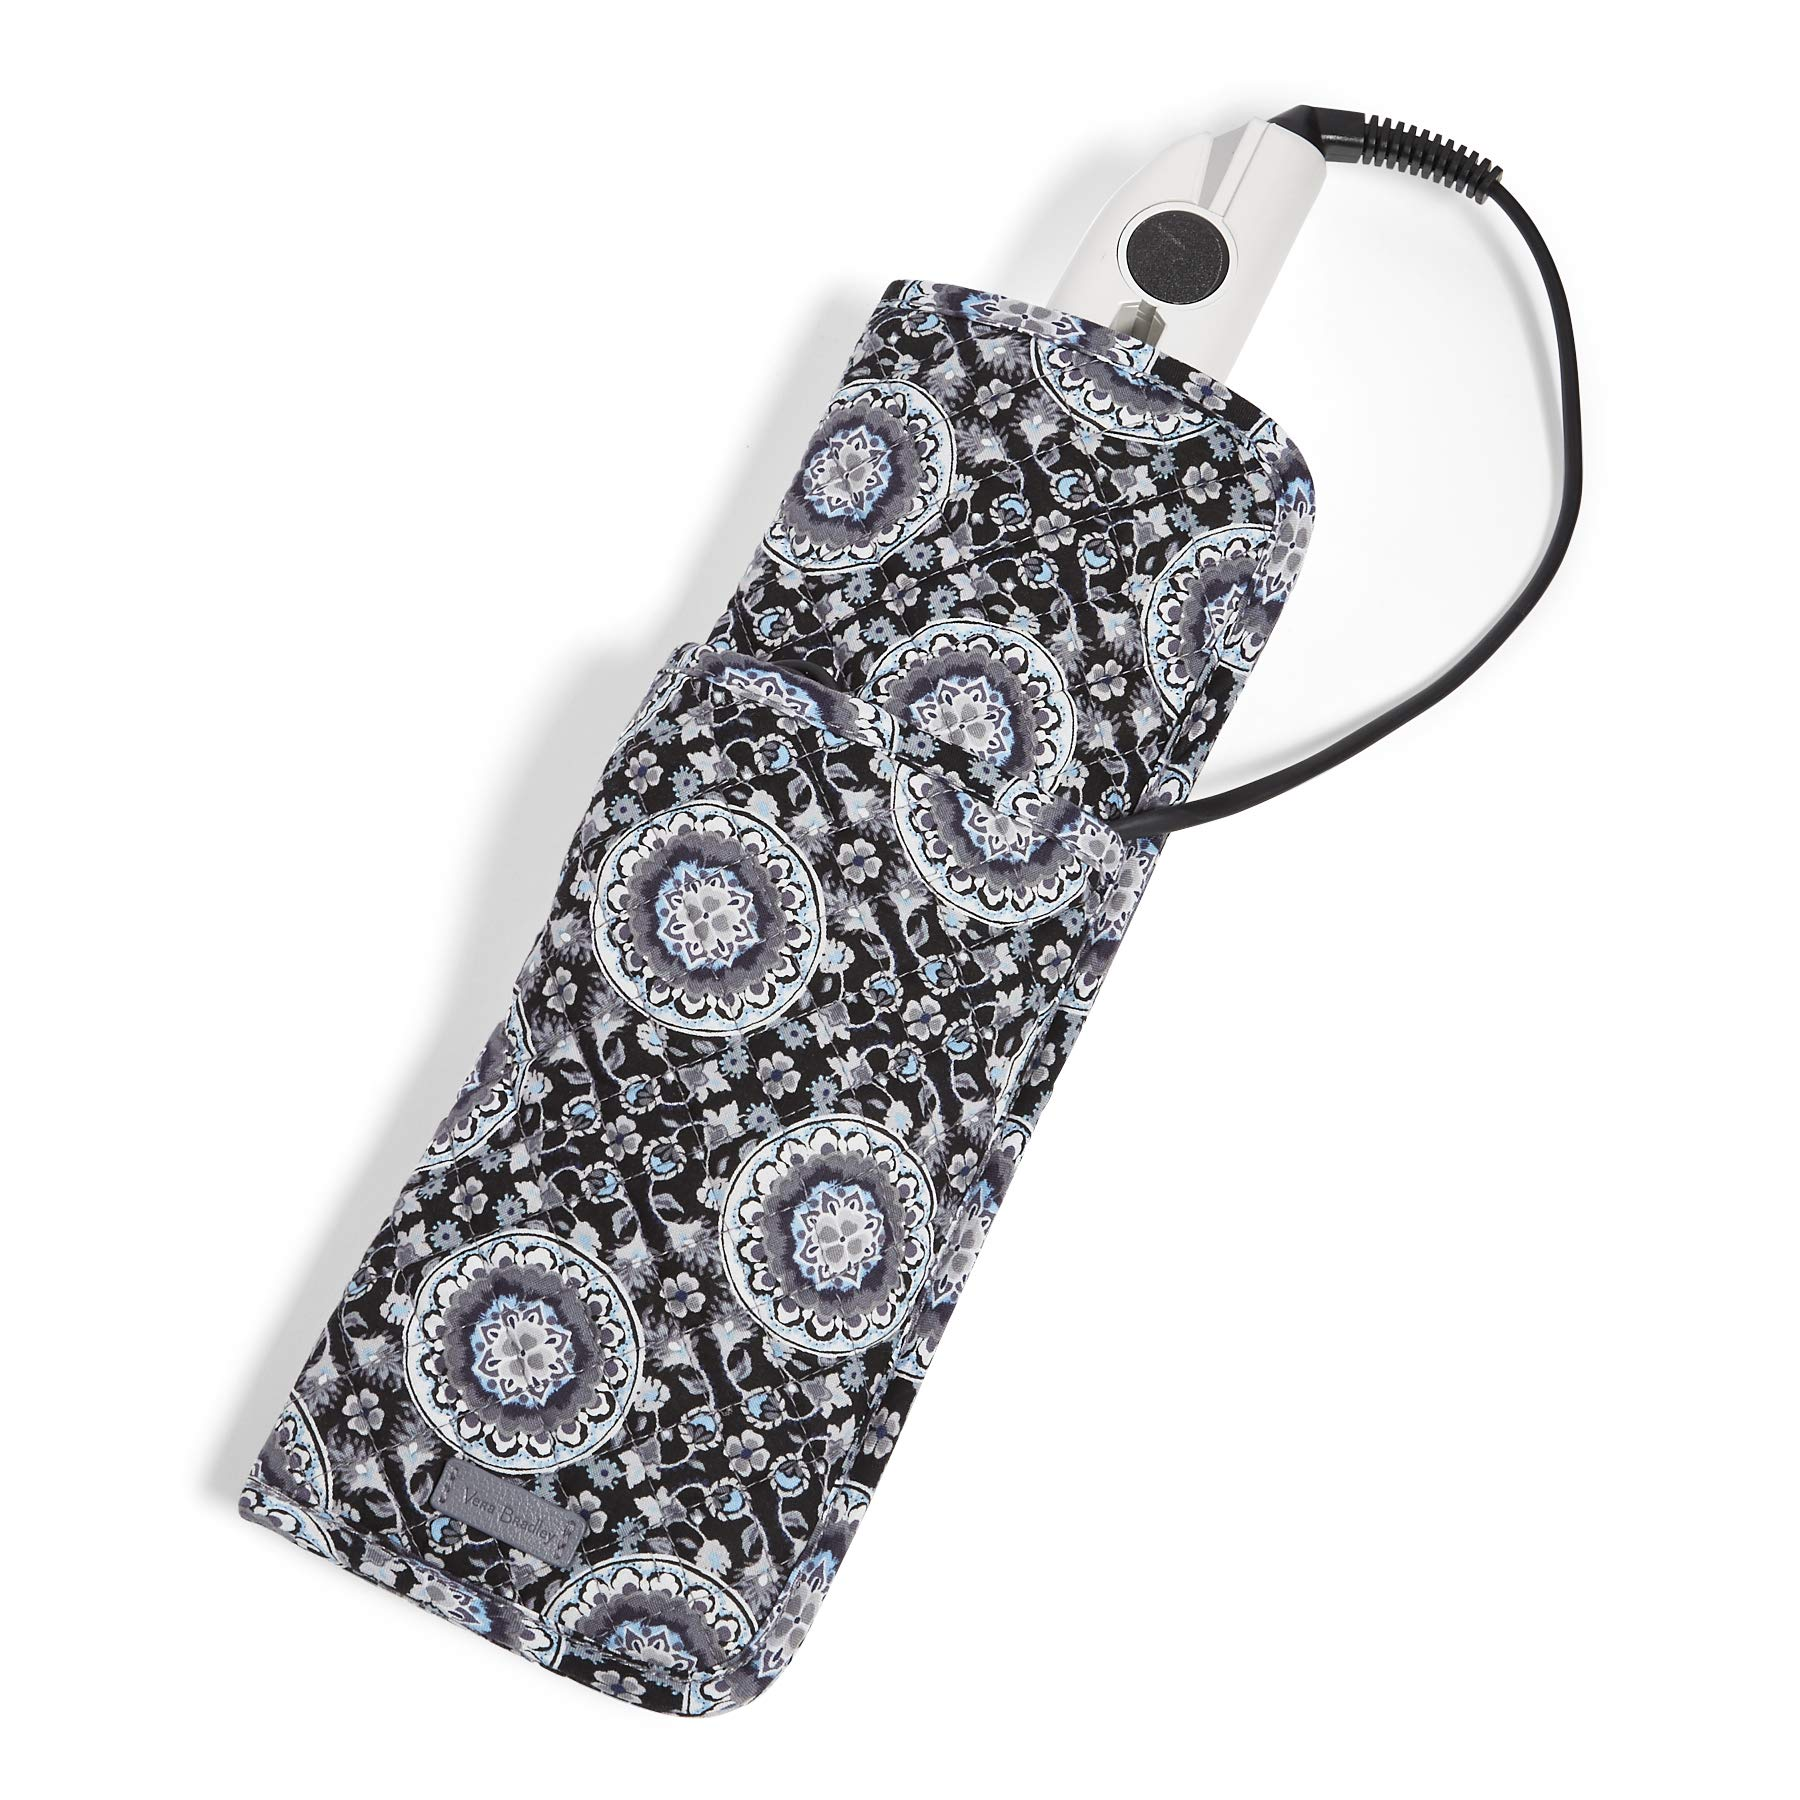 Vera Bradley Iconic Curling and Flat Iron Cover, Signature Cotton, Charcoal Medallion